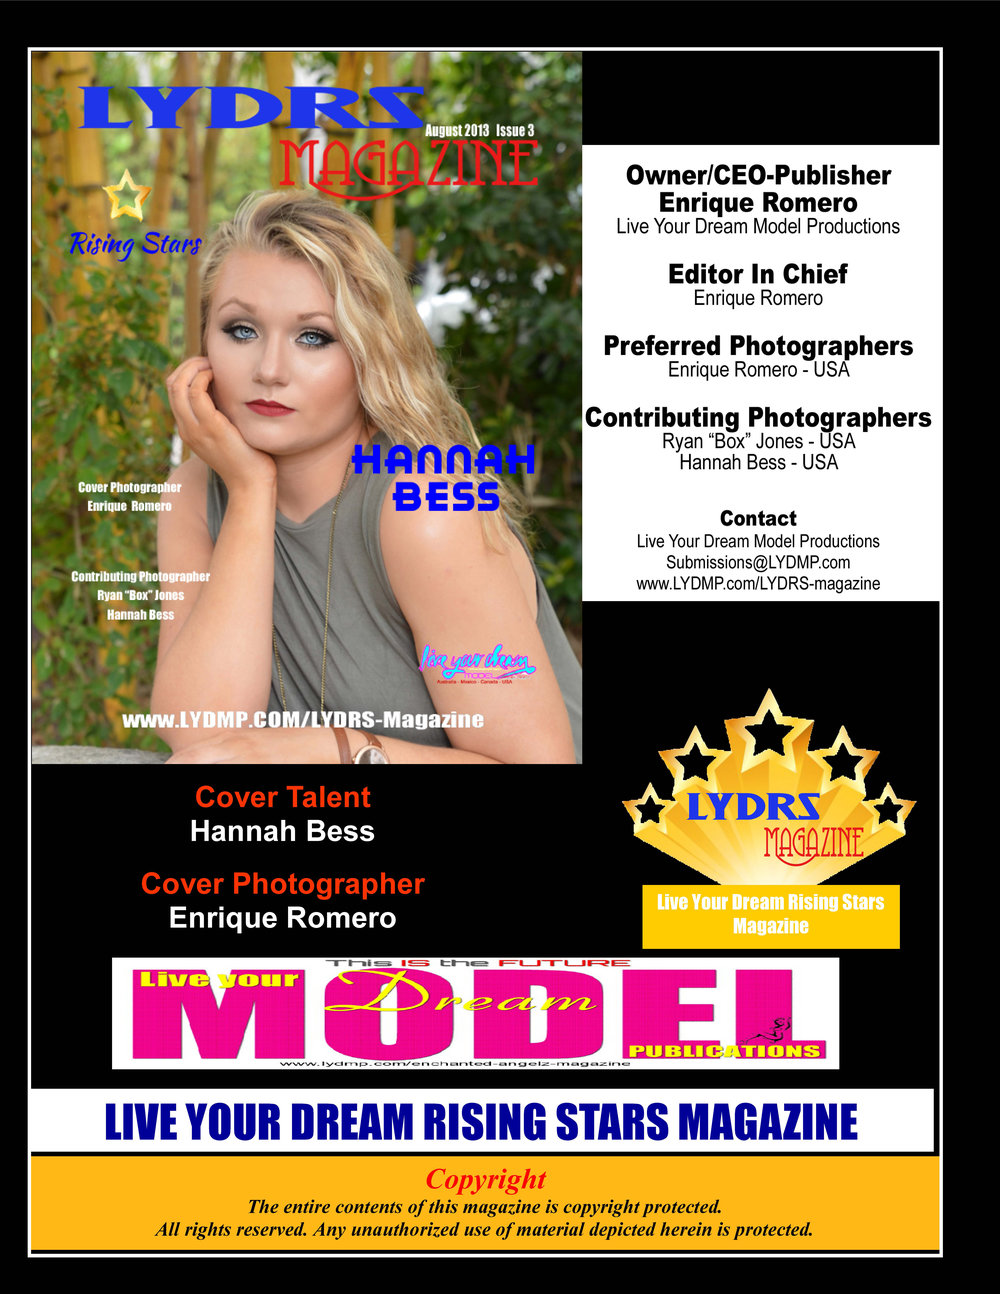 03-LYDRS Magazine-HB-Aug2017.jpg